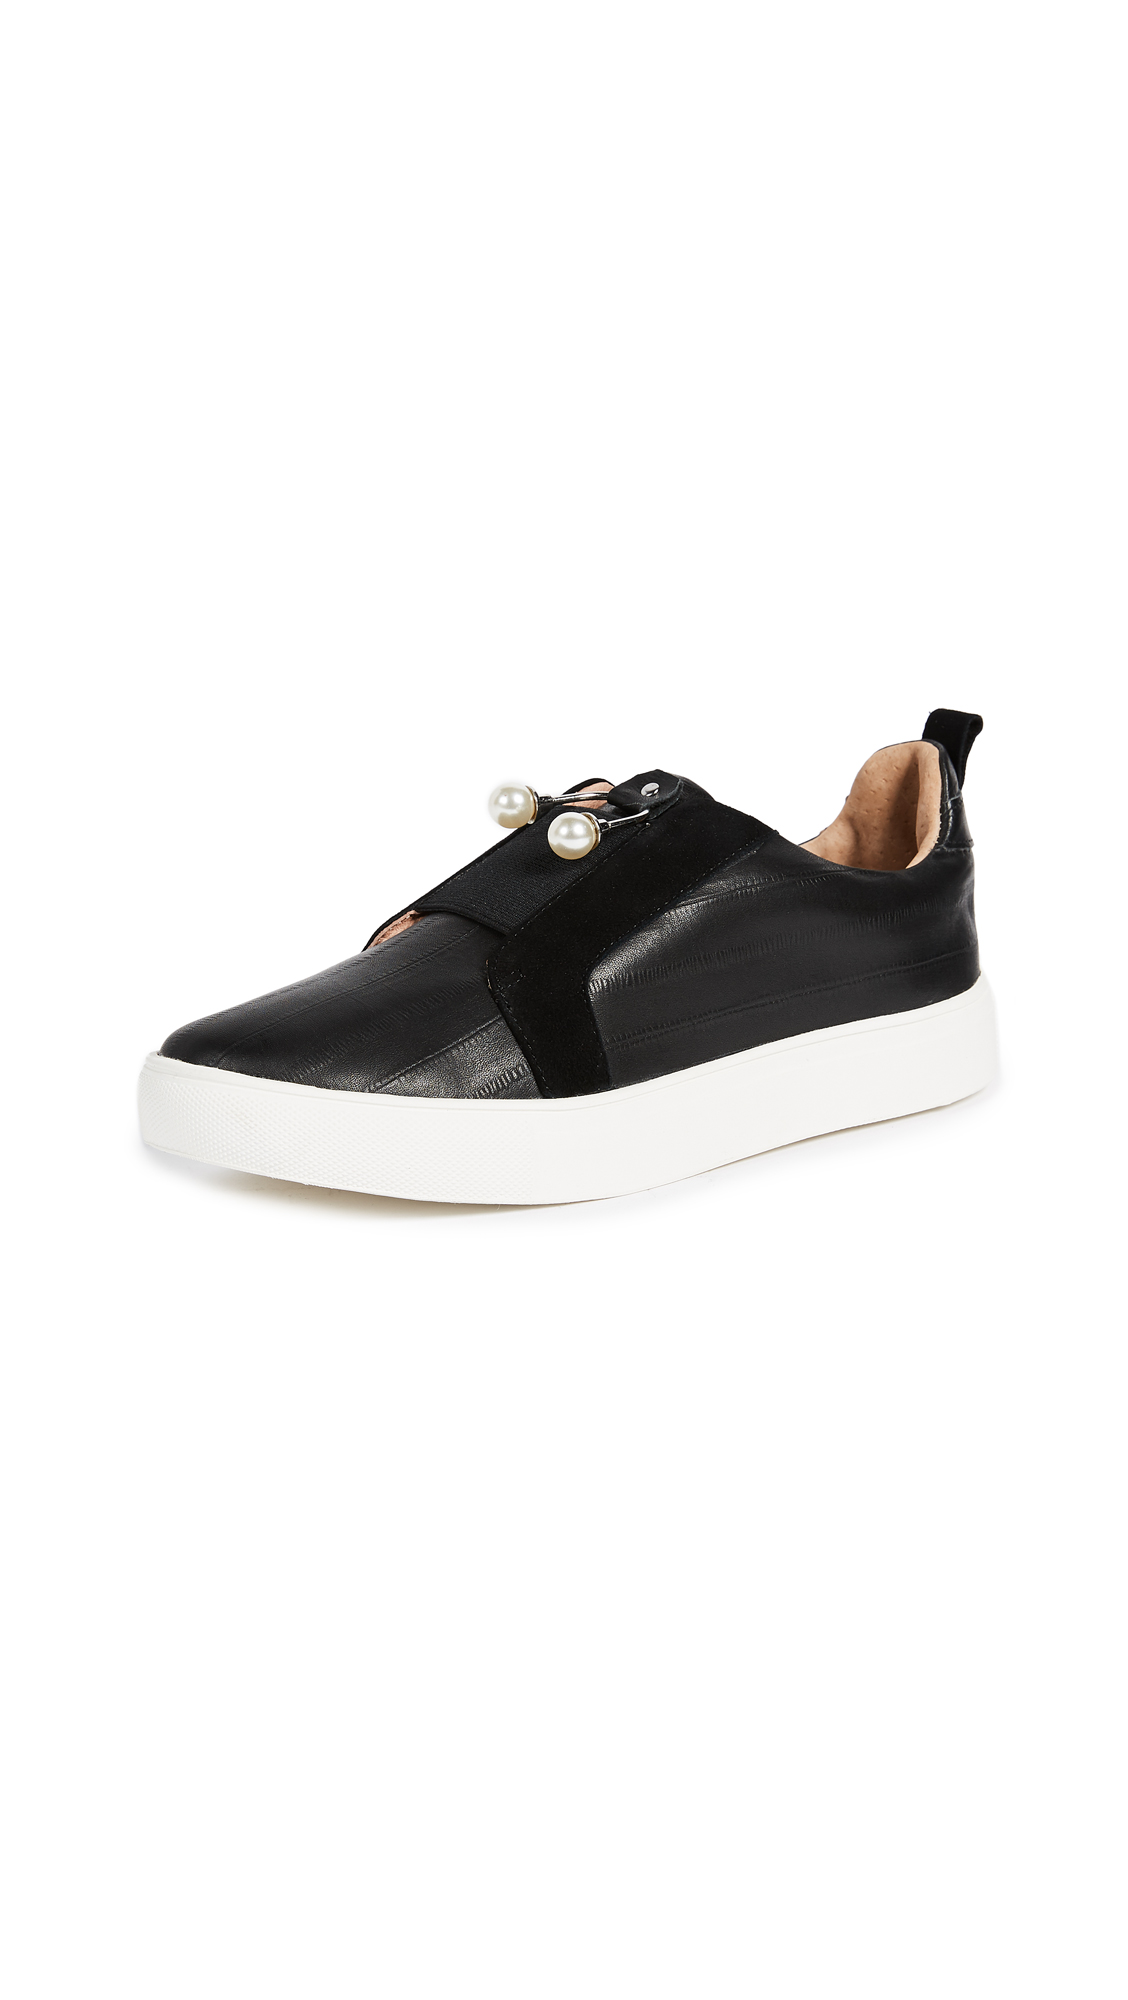 JAGGAR Jazz Slip On Sneakers - Black